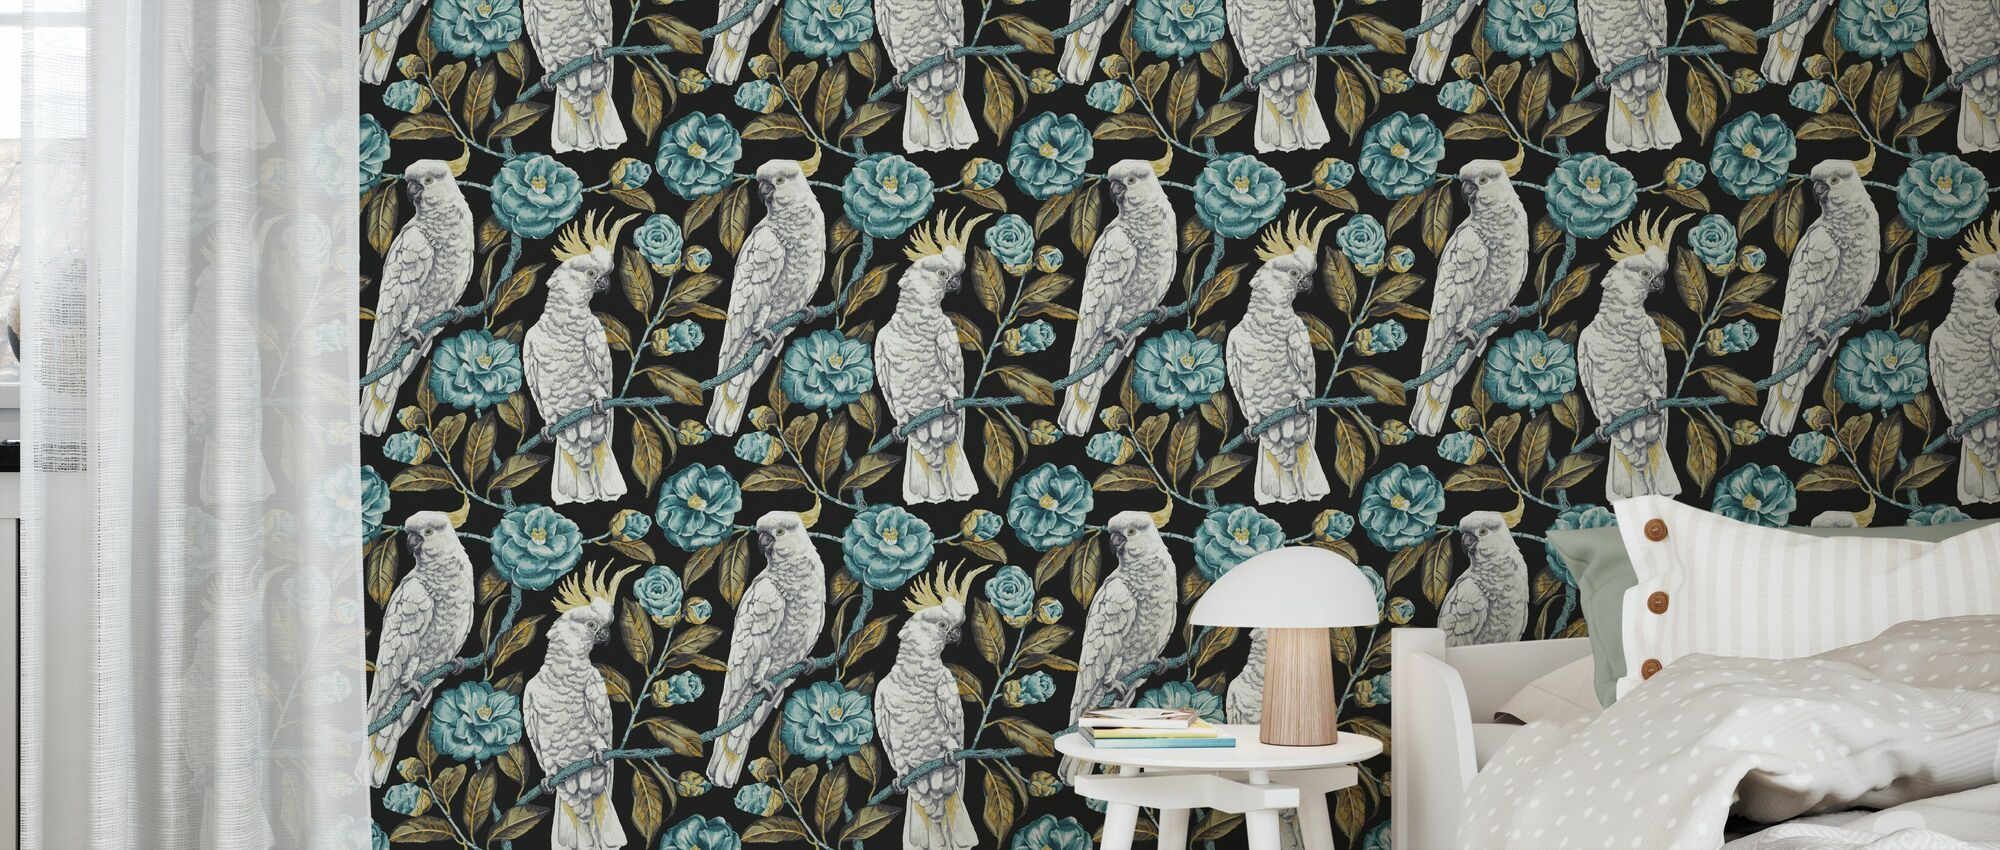 Cockatoo Paradise - Anthracite and Aquatic - Wallpaper - Kids Room